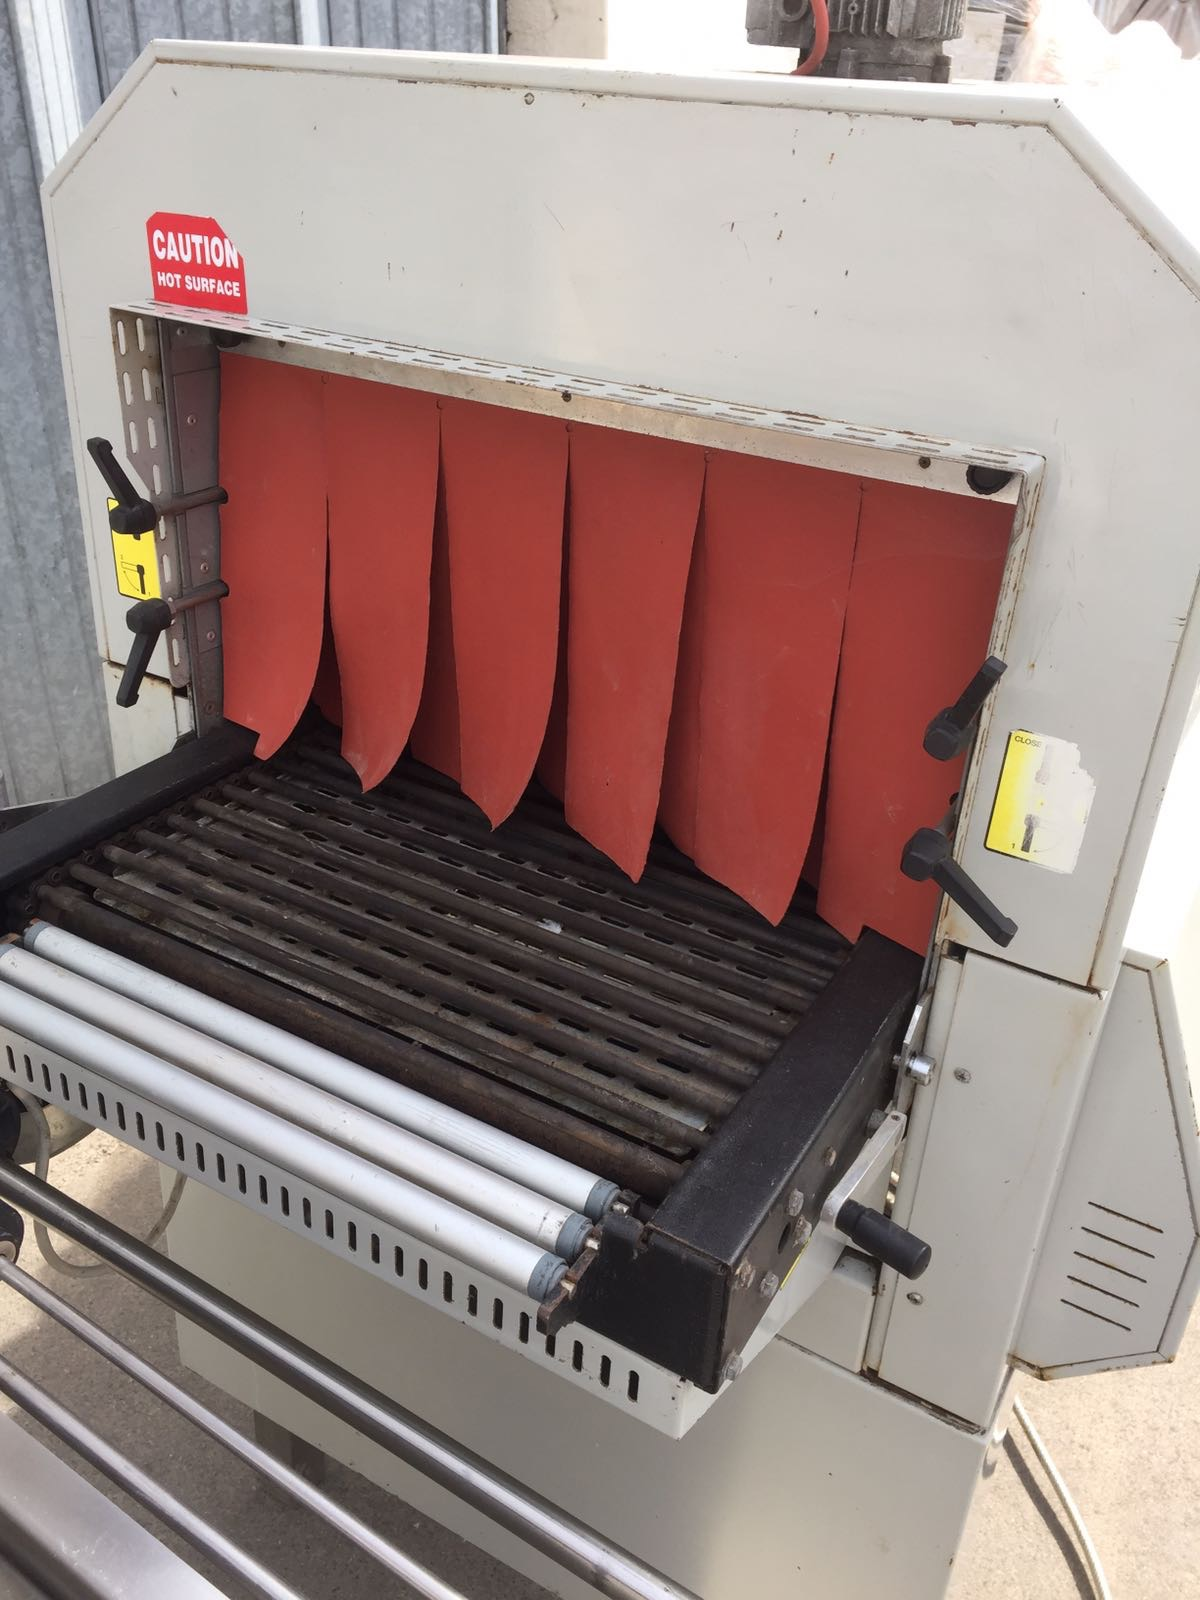 Lot 21 - Adpak Heat Shrink Tunnel. Aperture 440 x 250mm high. Overall length 1300 x 800mm wideLIFT OUT £10